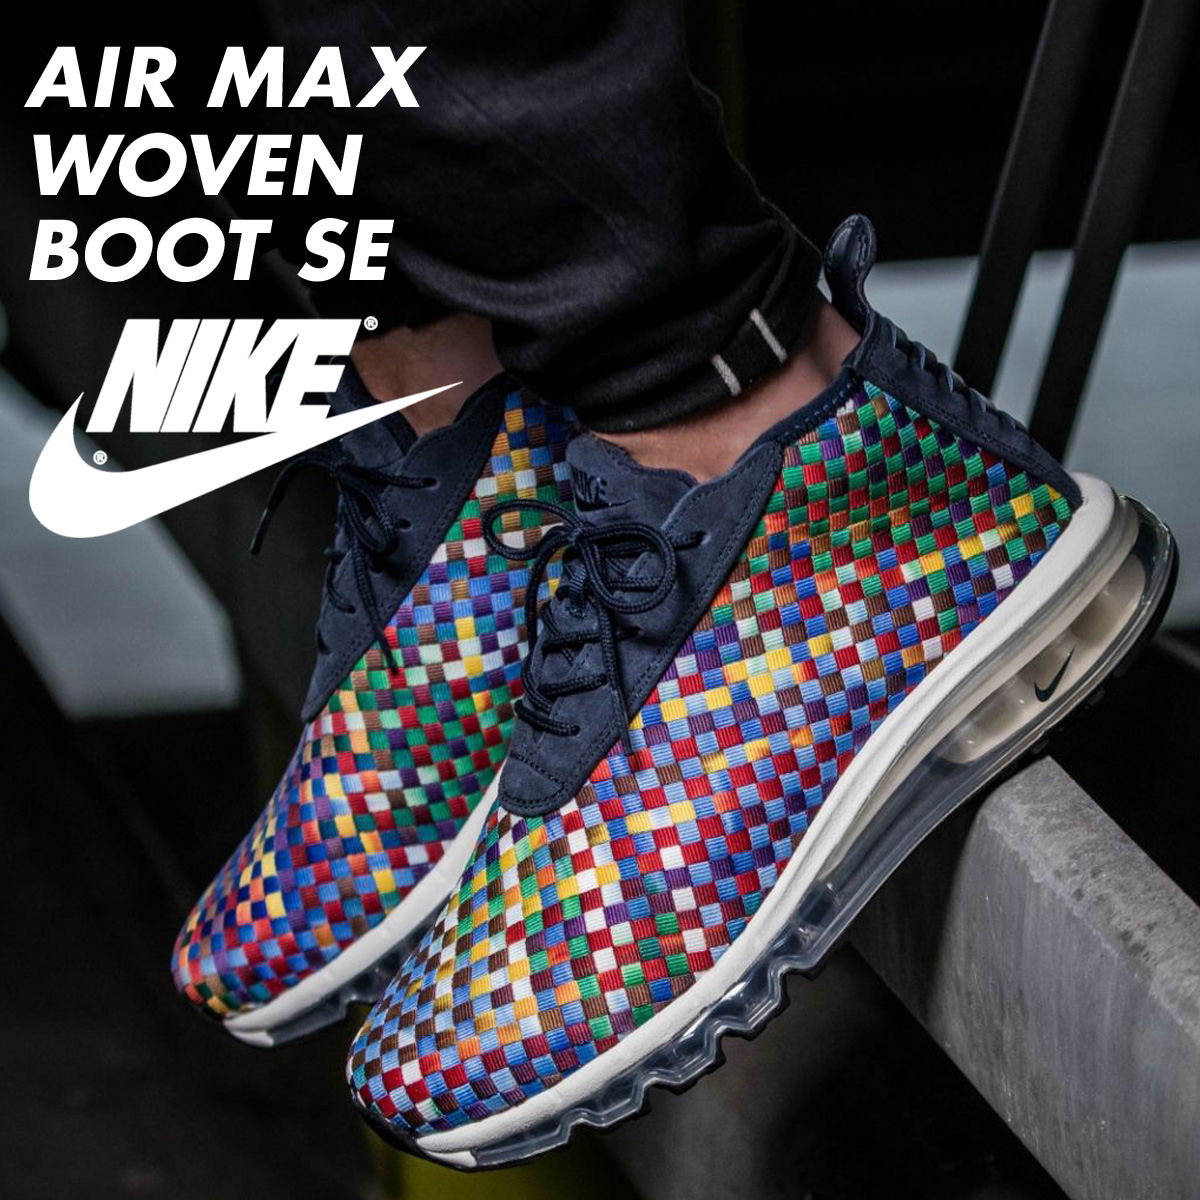 the latest 4d0aa c3b87 Nike NIKE Air Max sneakers AIR MAX WOVEN BOOT SE AH8139-400 men shoes  multi- load planned Shinnyu load in reservation product 9 29 containing